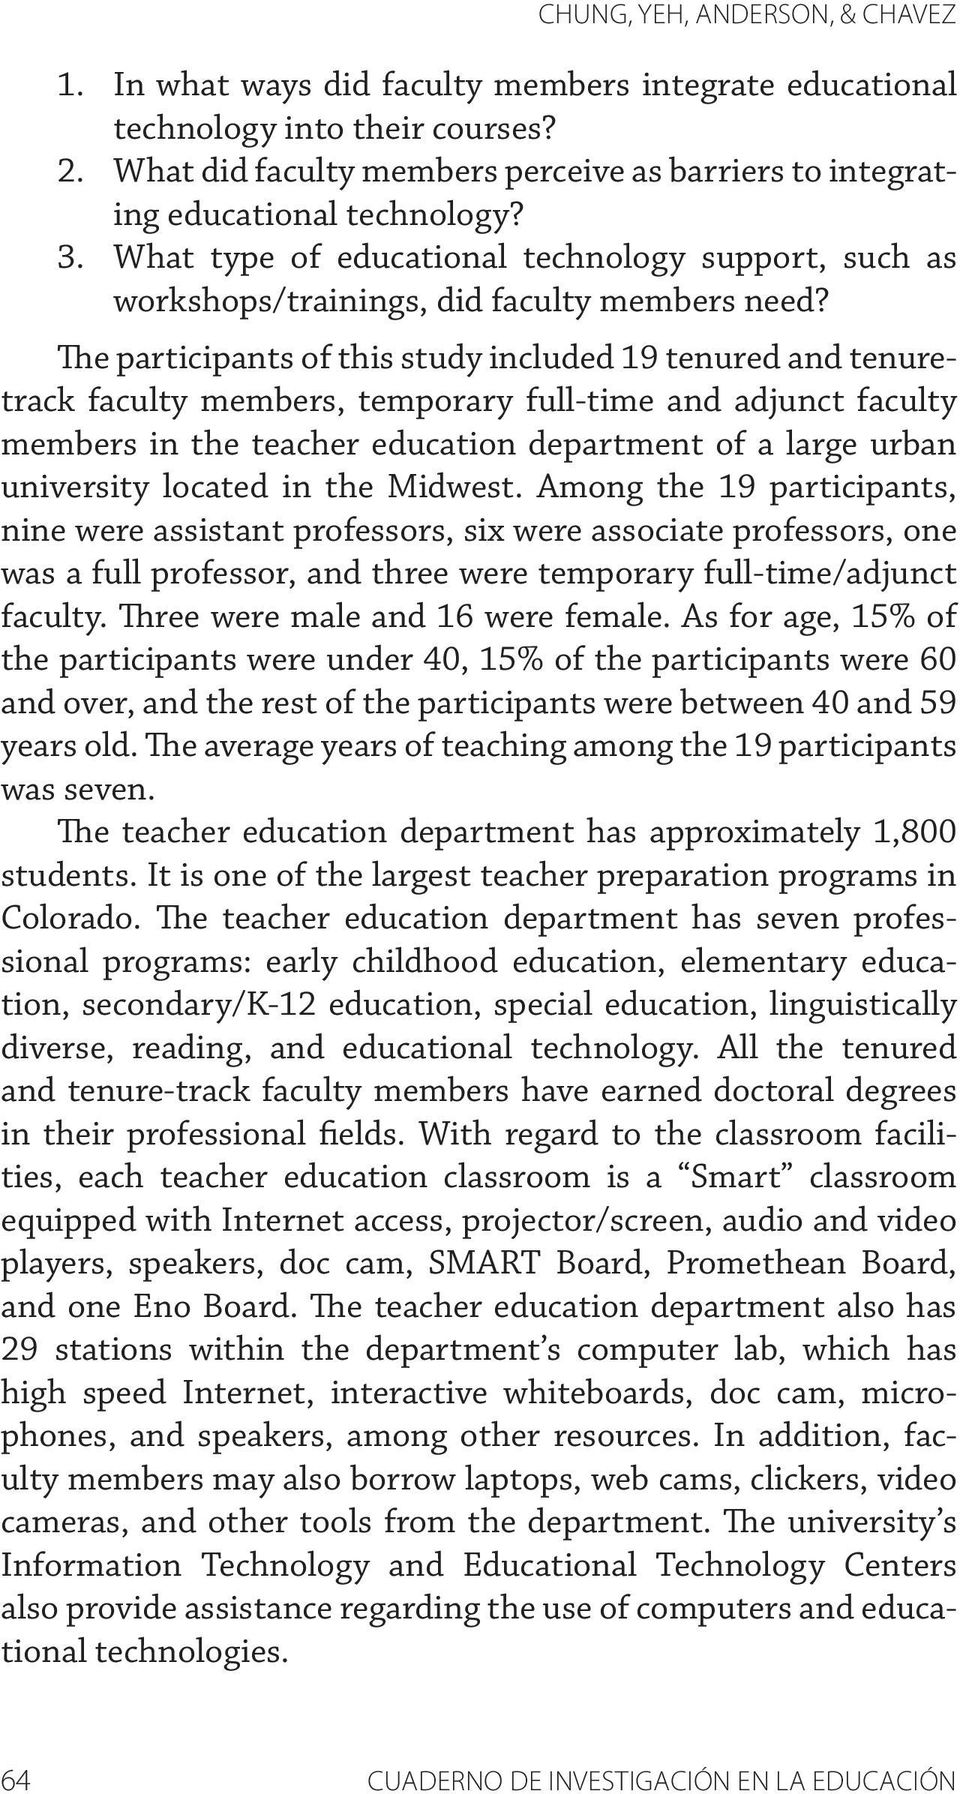 The participants of this study included 19 tenured and tenuretrack faculty members, temporary full-time and adjunct faculty members in the teacher education department of a large urban university